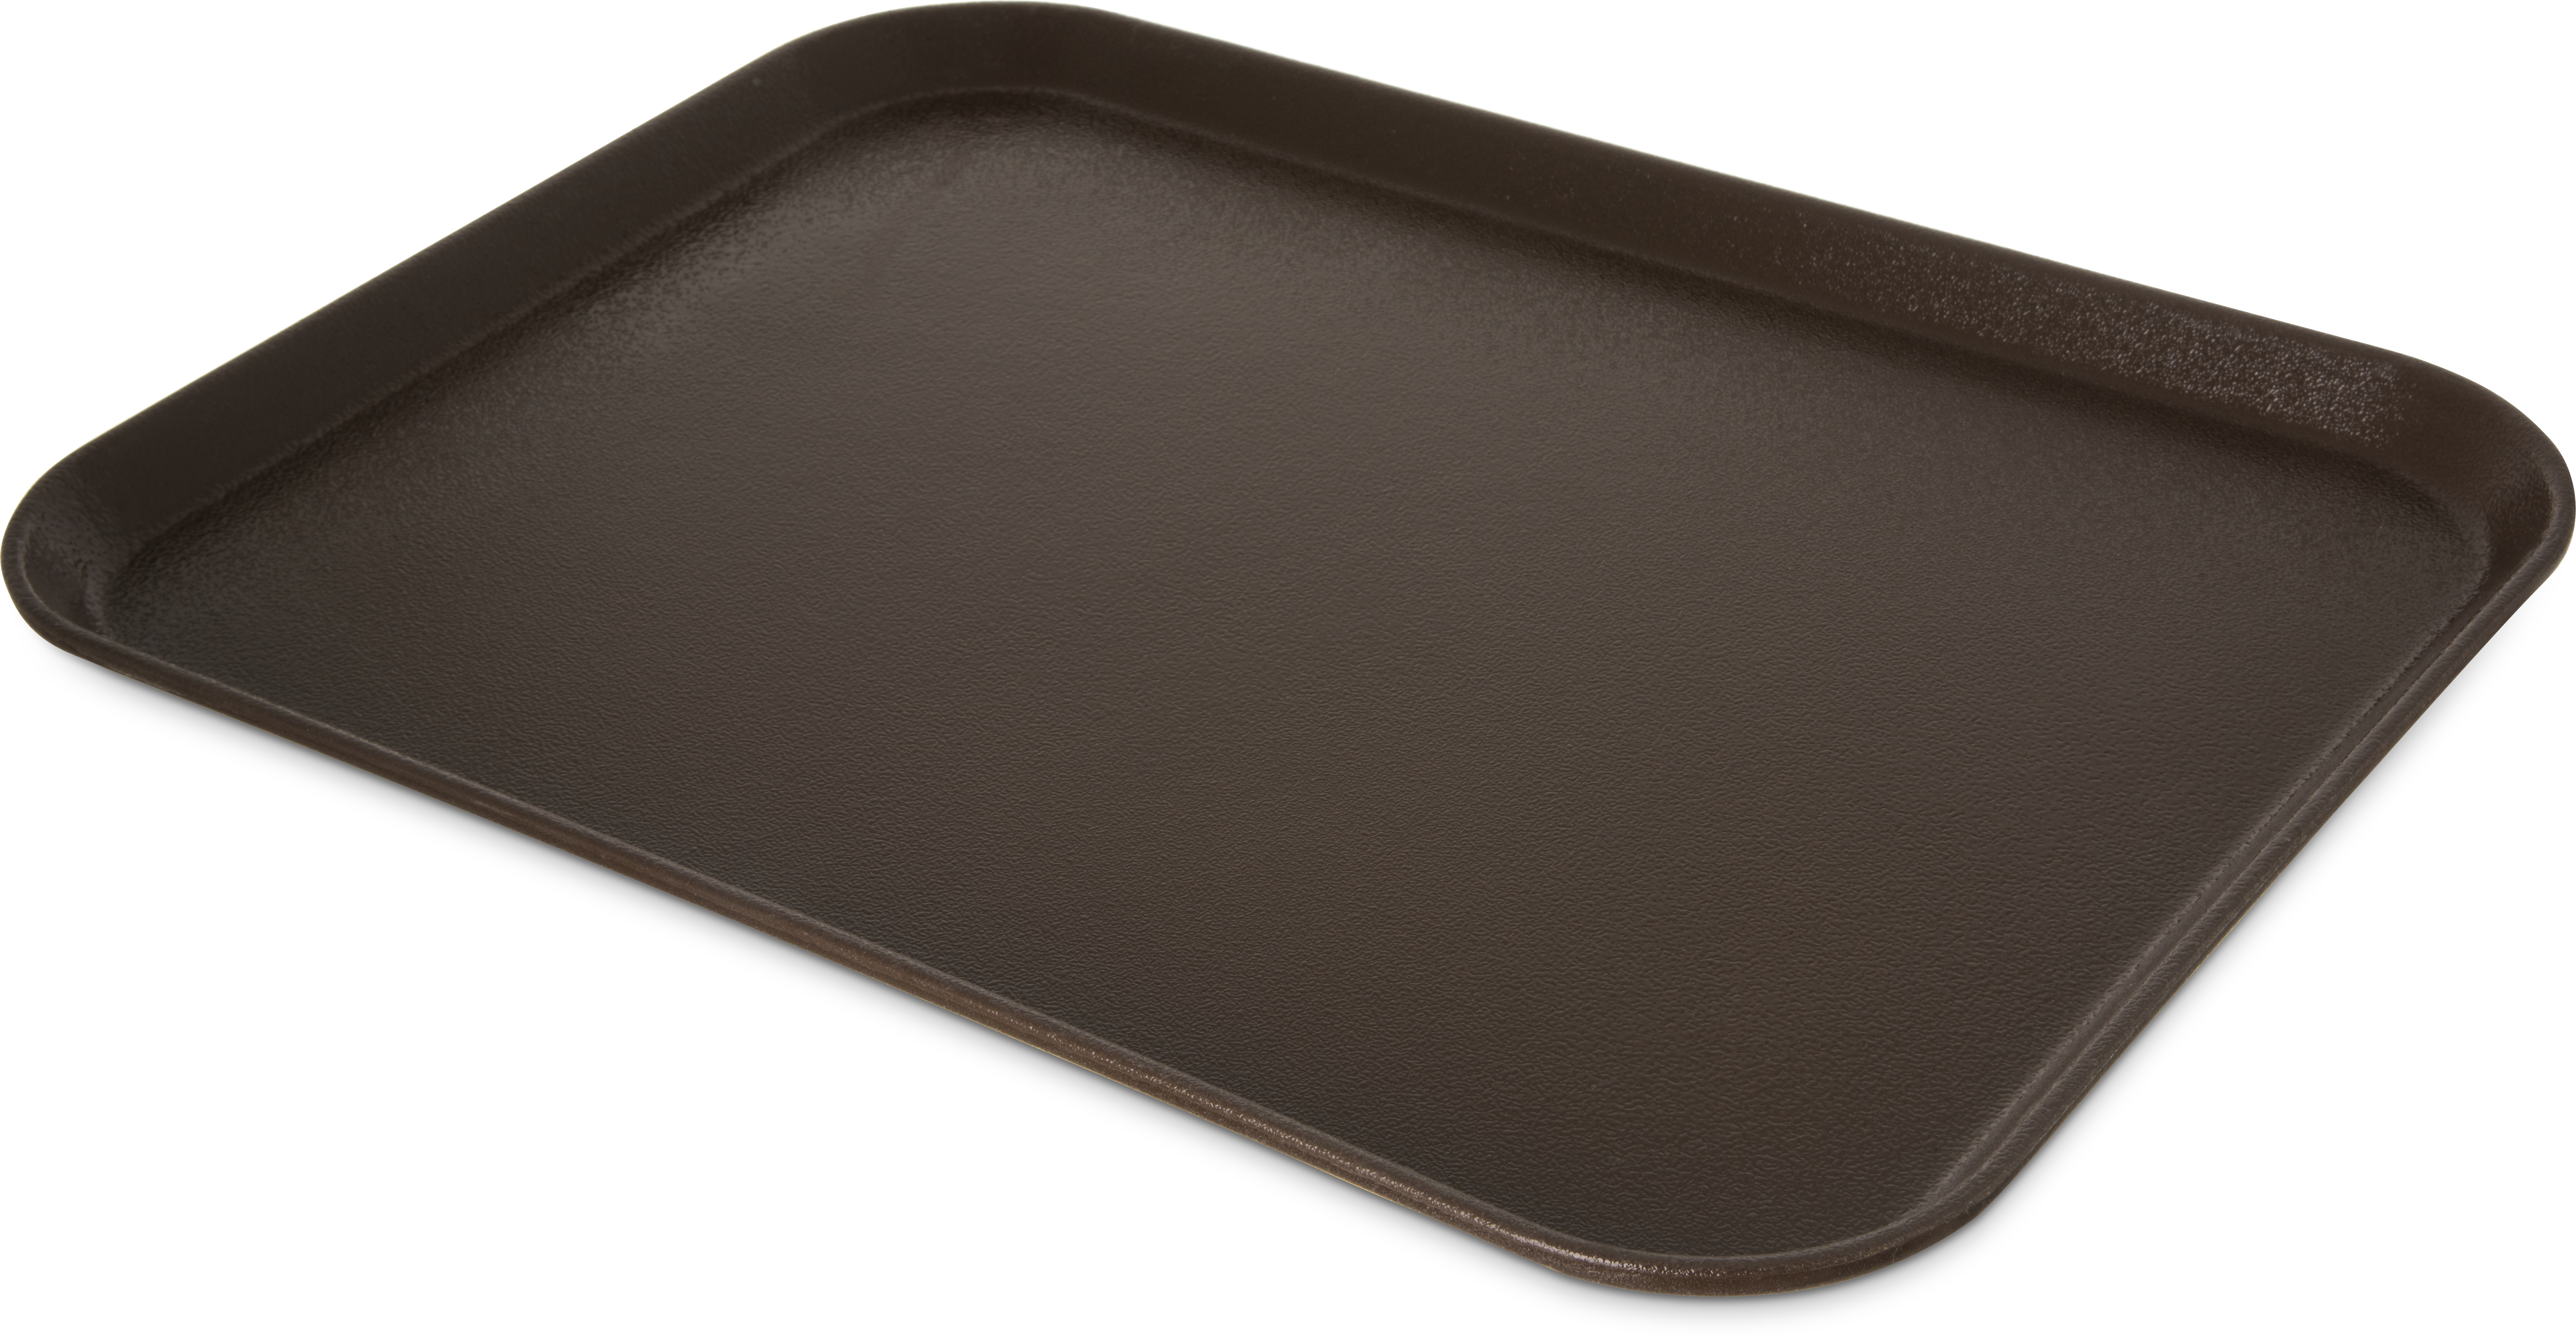 Griptite 2 Rectangle Tray 20 x 15 - Brown